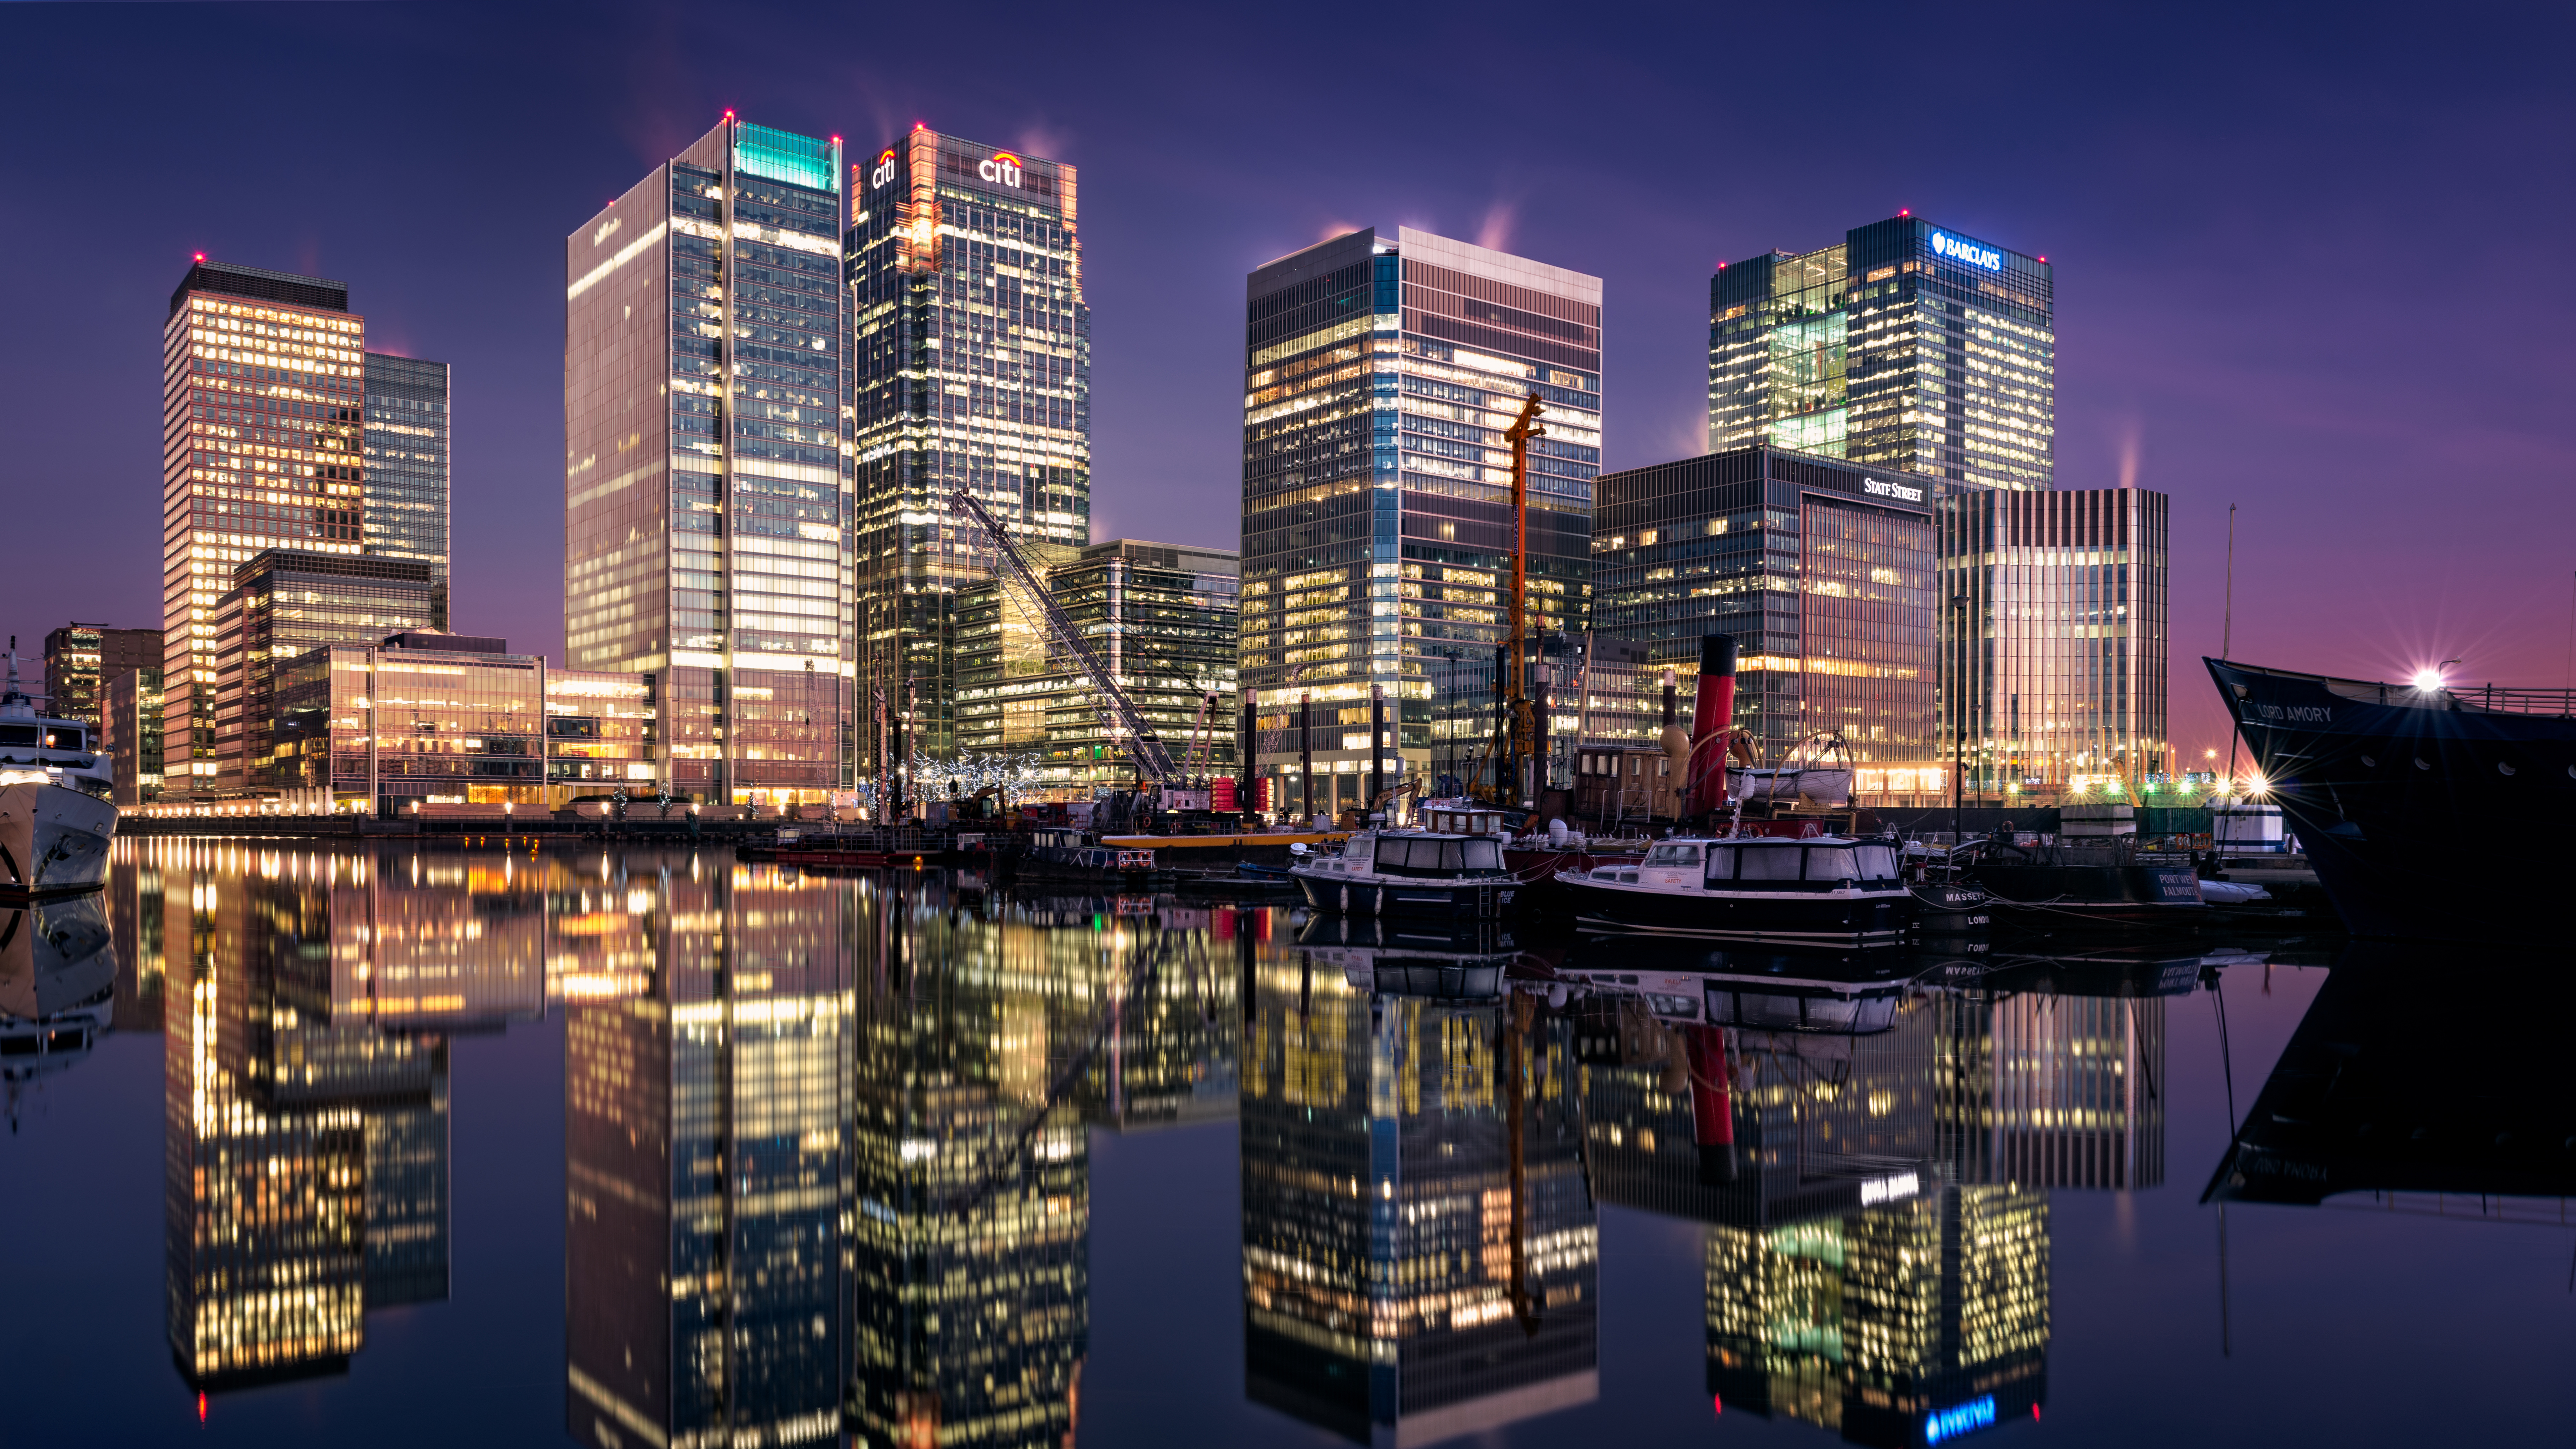 Canary Wharf South Dock London 4k 8k Wallpapers Hd Wallpapers